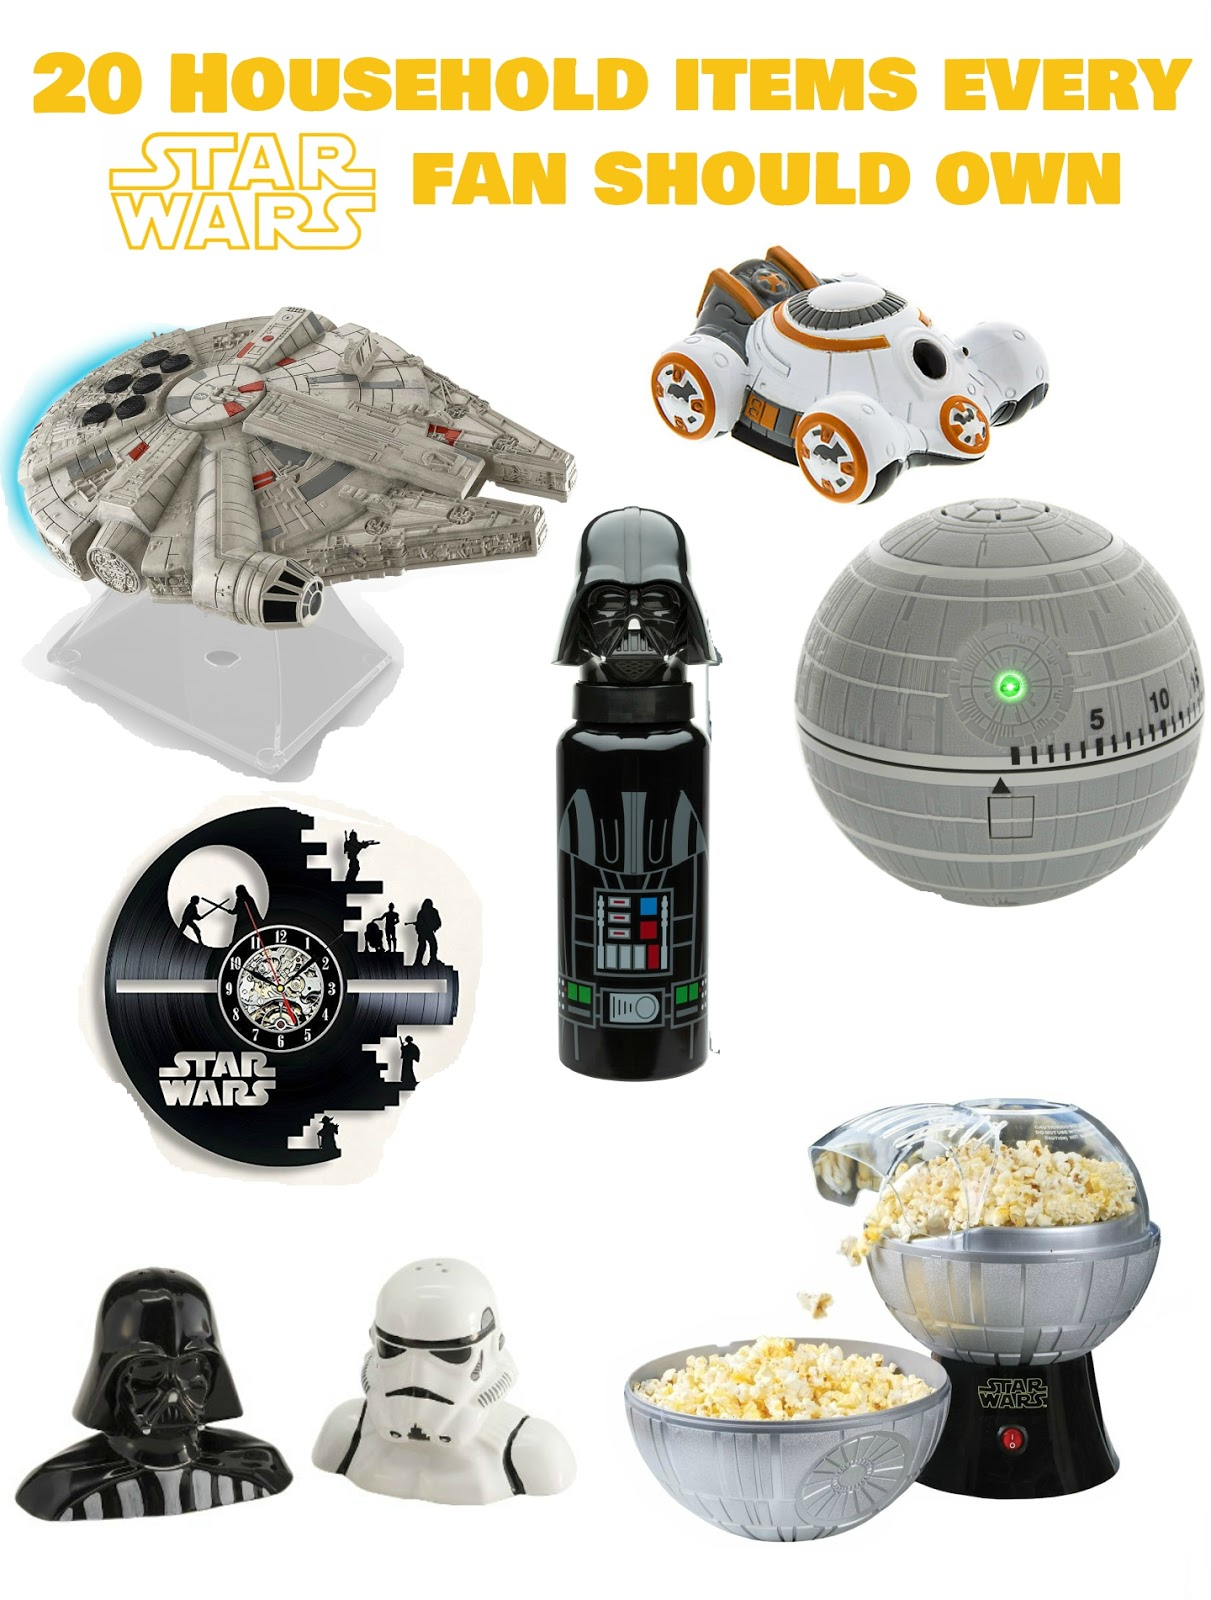 Star Wars House Items The Best Star Wars Household Gadgets Everything Rad